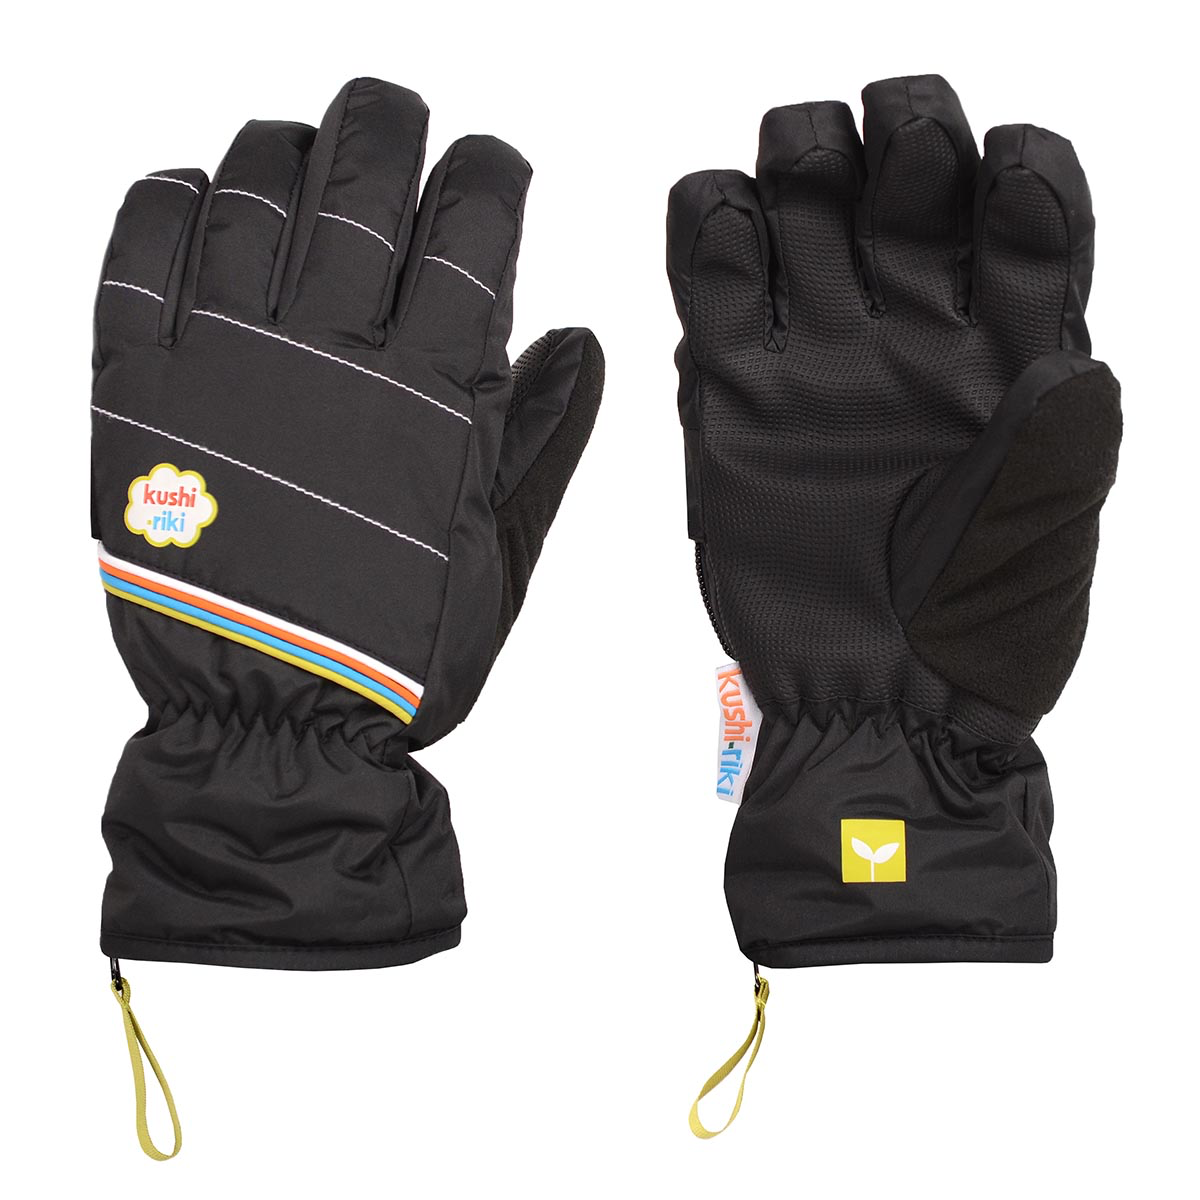 Kushi-Riki Hope Glove - Black